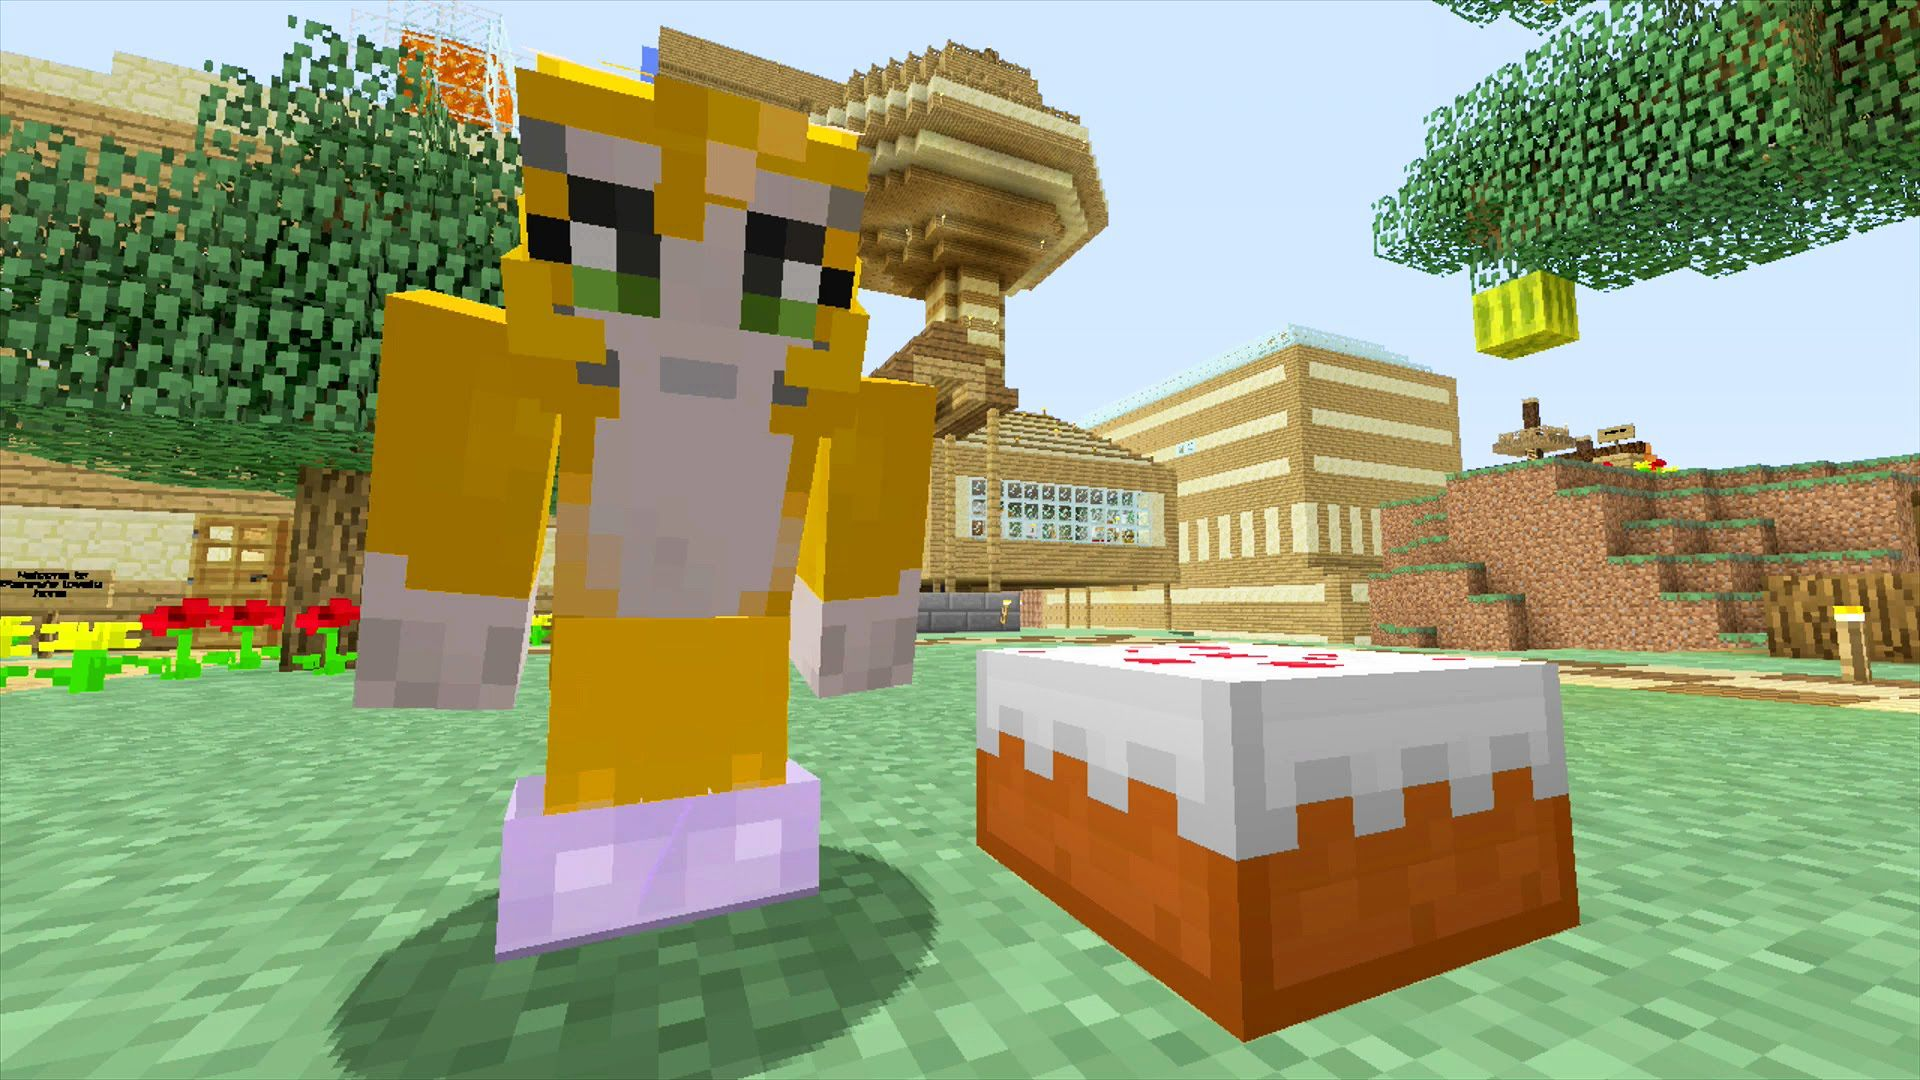 Stampy Hunger Games Cake House